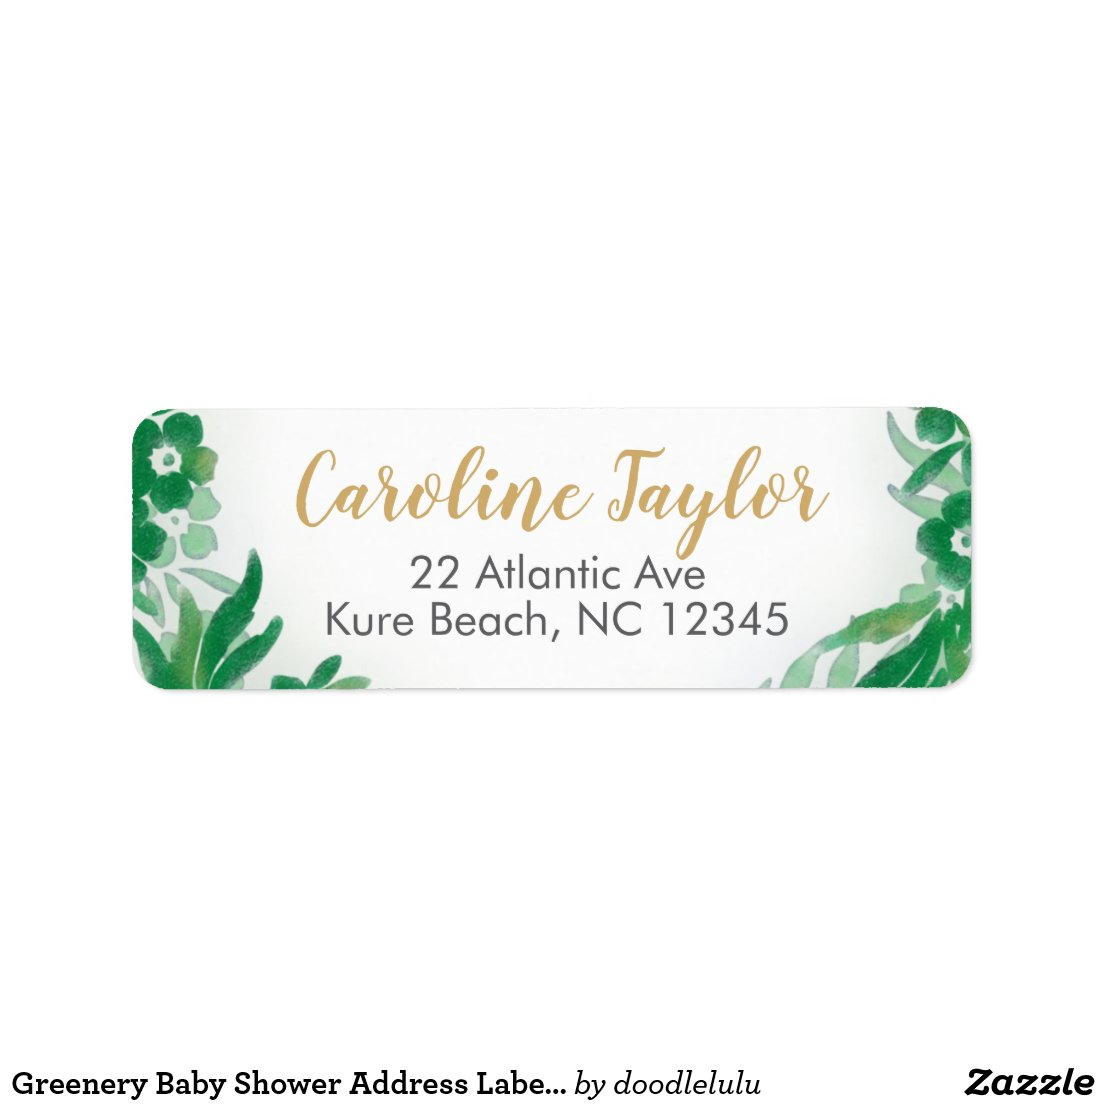 Greenery Baby Shower Address Label green and gold